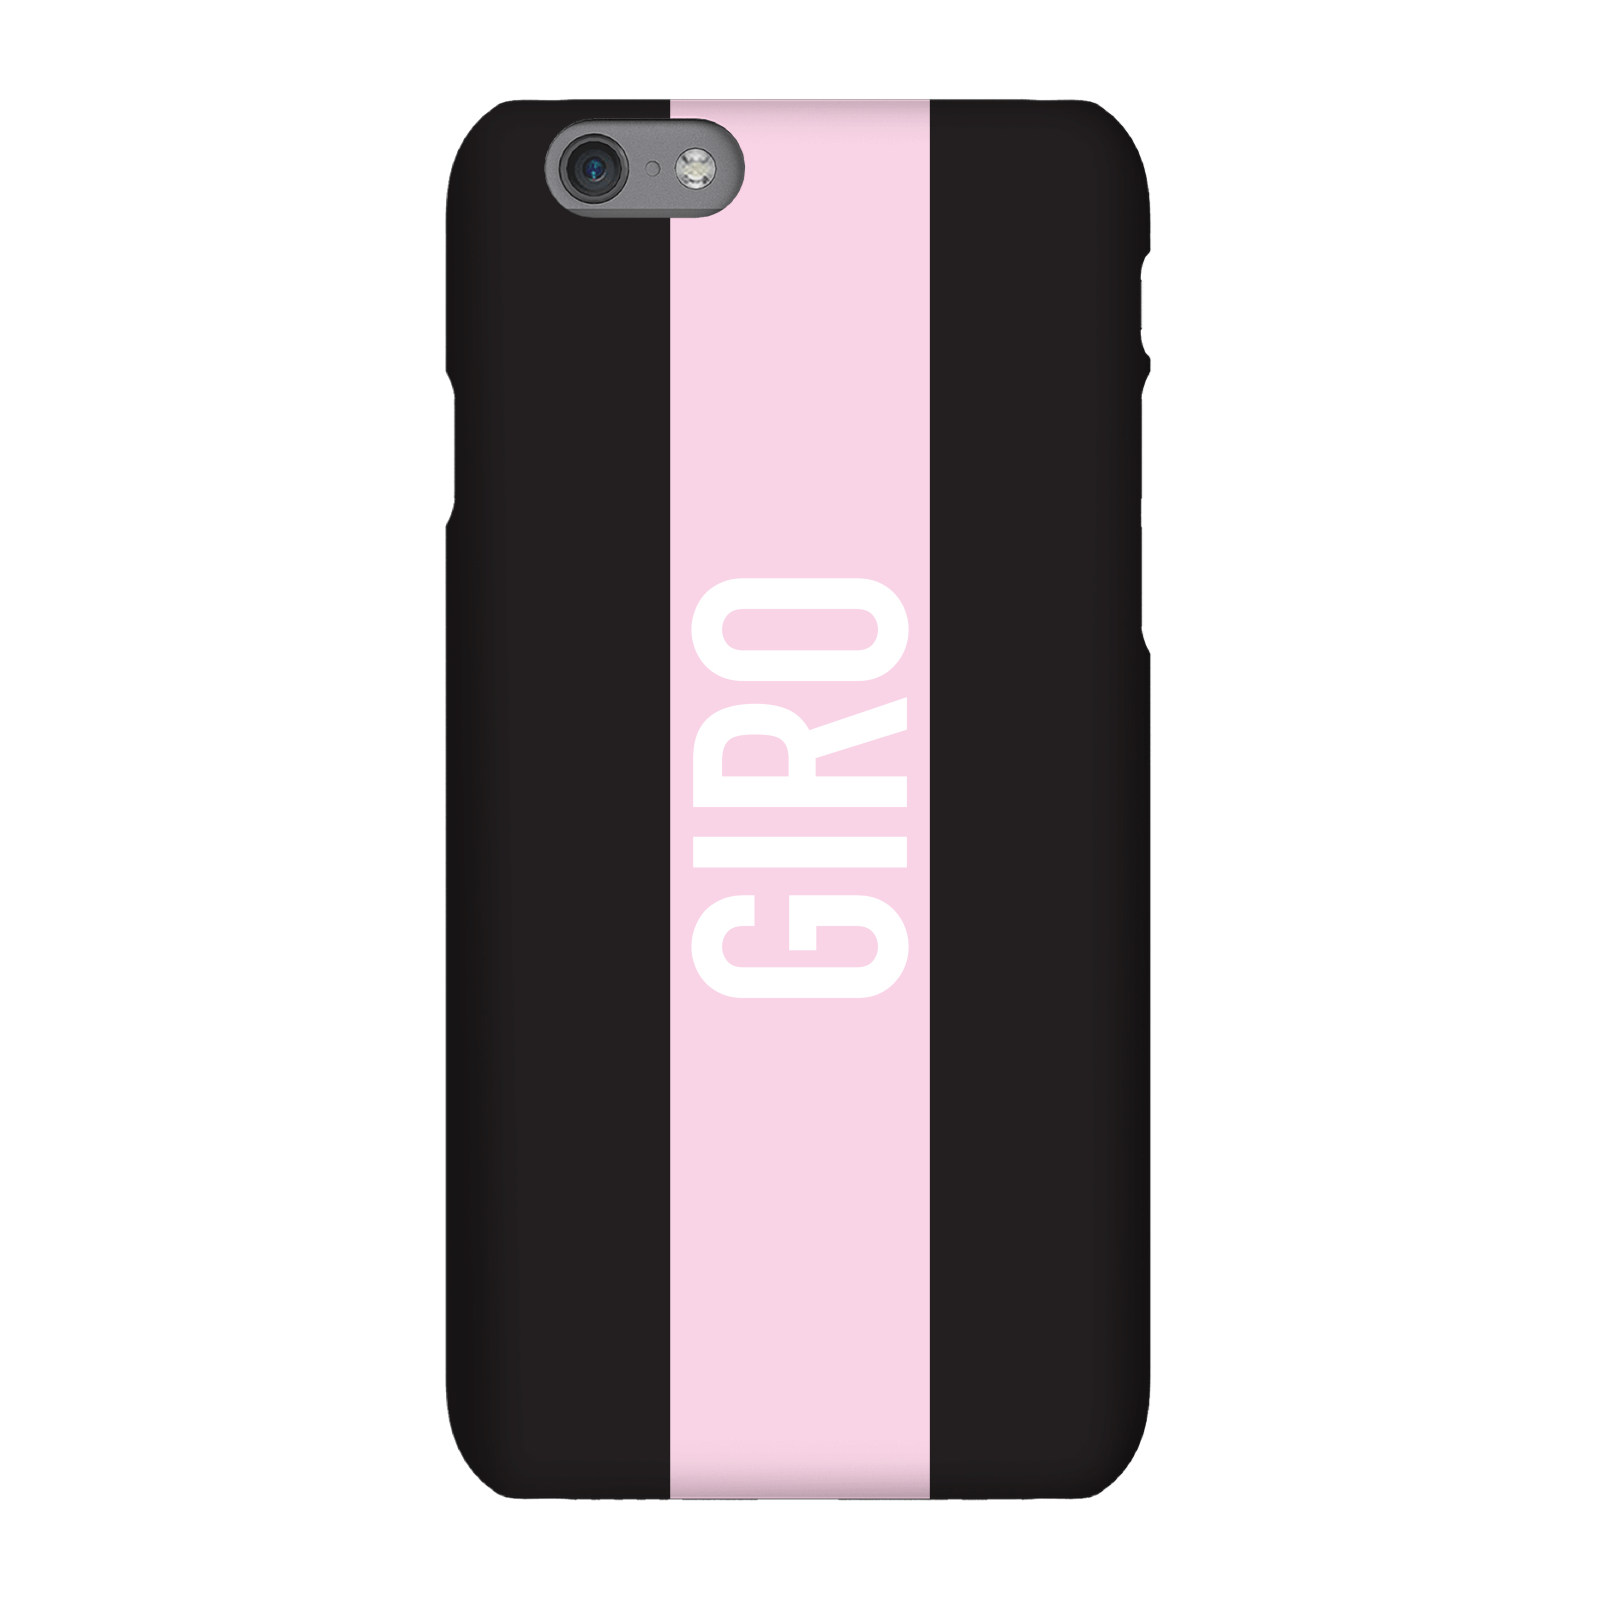 Giro Phone Case For Iphone And Android - Iphone 7 - Tough Case - Matte